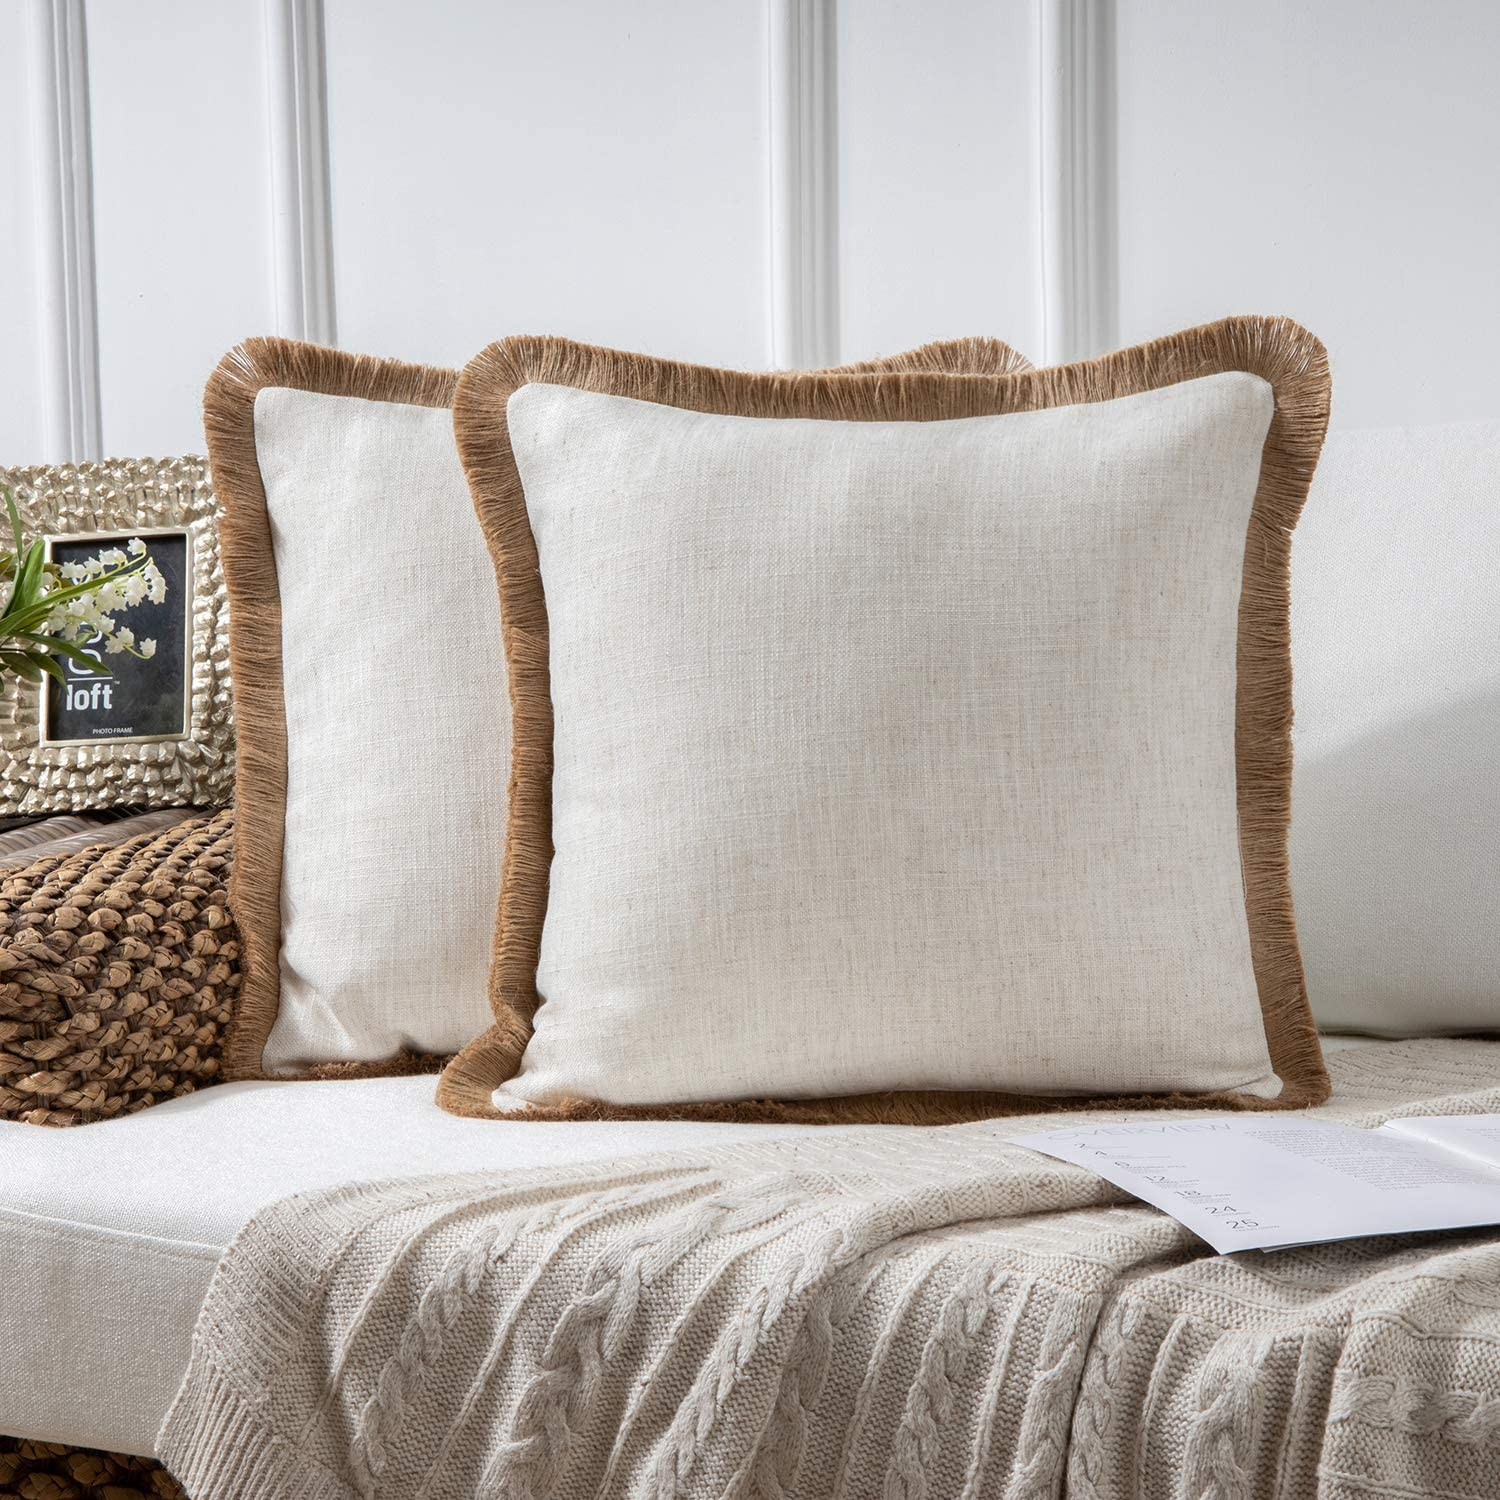 Phantoscope Pack of 2 Farmhouse Decorative Throw Pillow Covers Linen Tassel Trimmed Fall Outdoor Pillow Decor, Off White, 18 x 18 inches, 45 x 45 cm